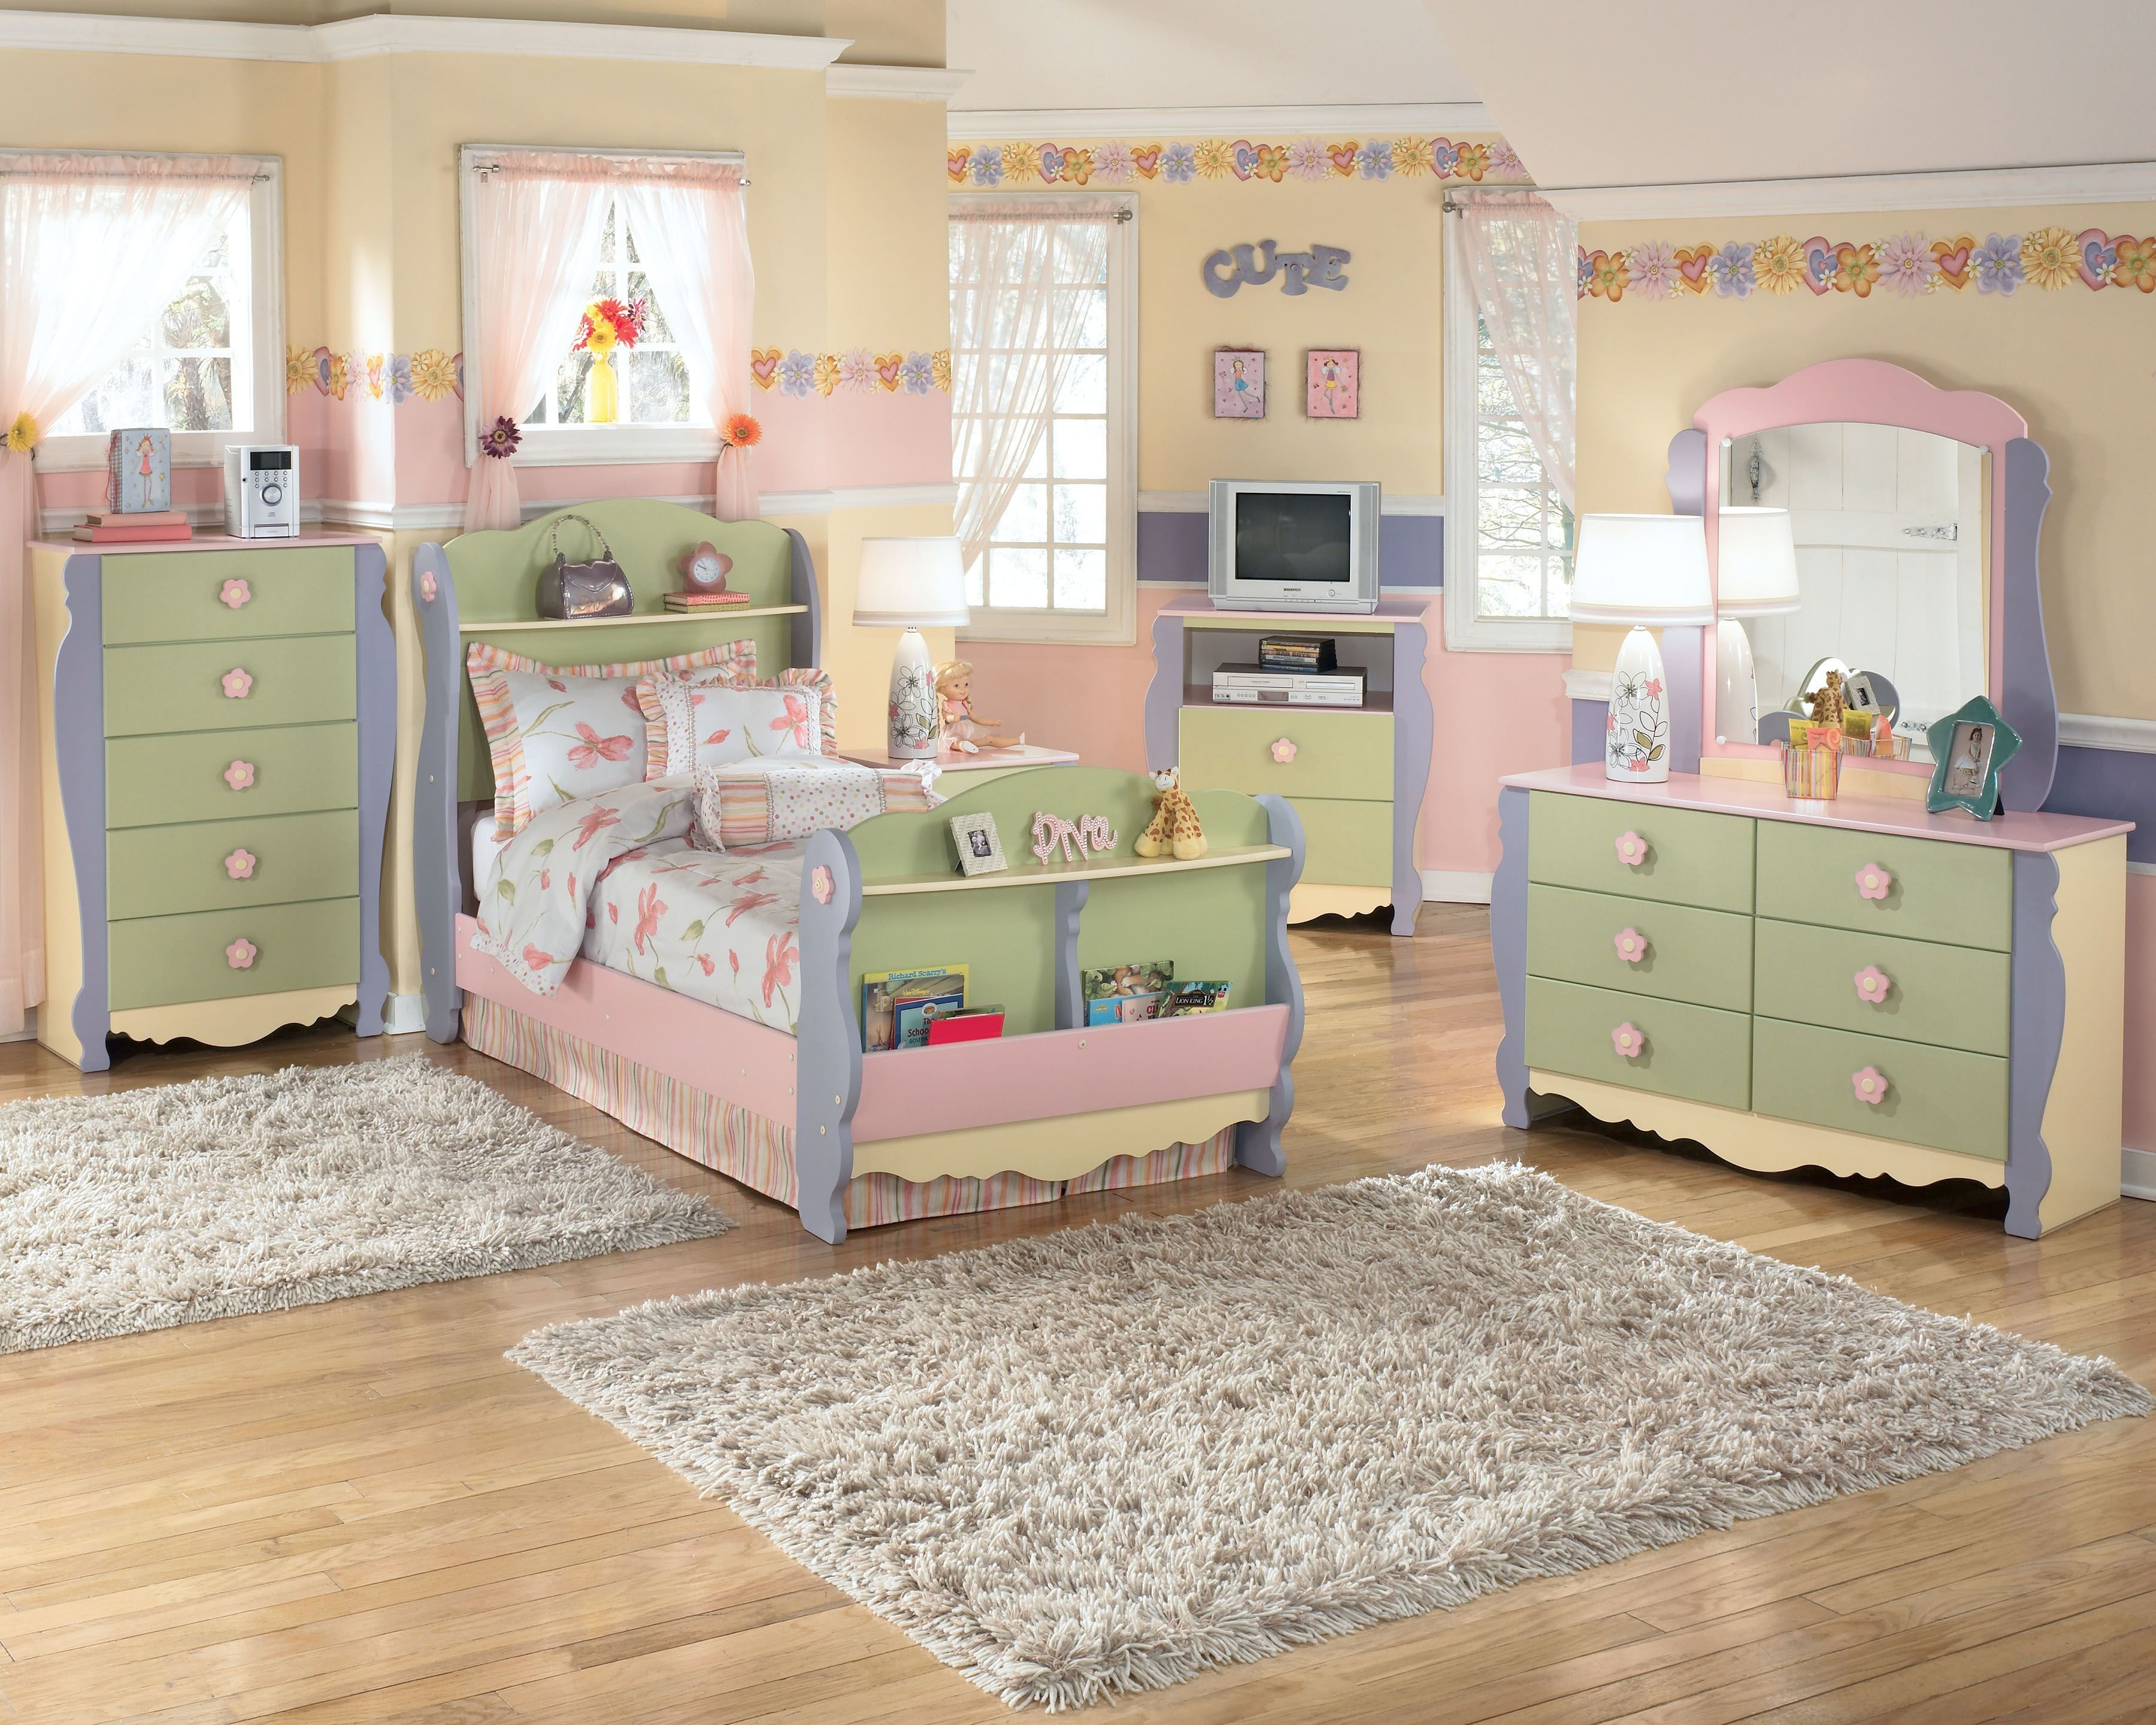 Best Such A Sweet Ashley Furniture Homestore Bedroom For A Little Girl She May Even Be Excited To With Pictures